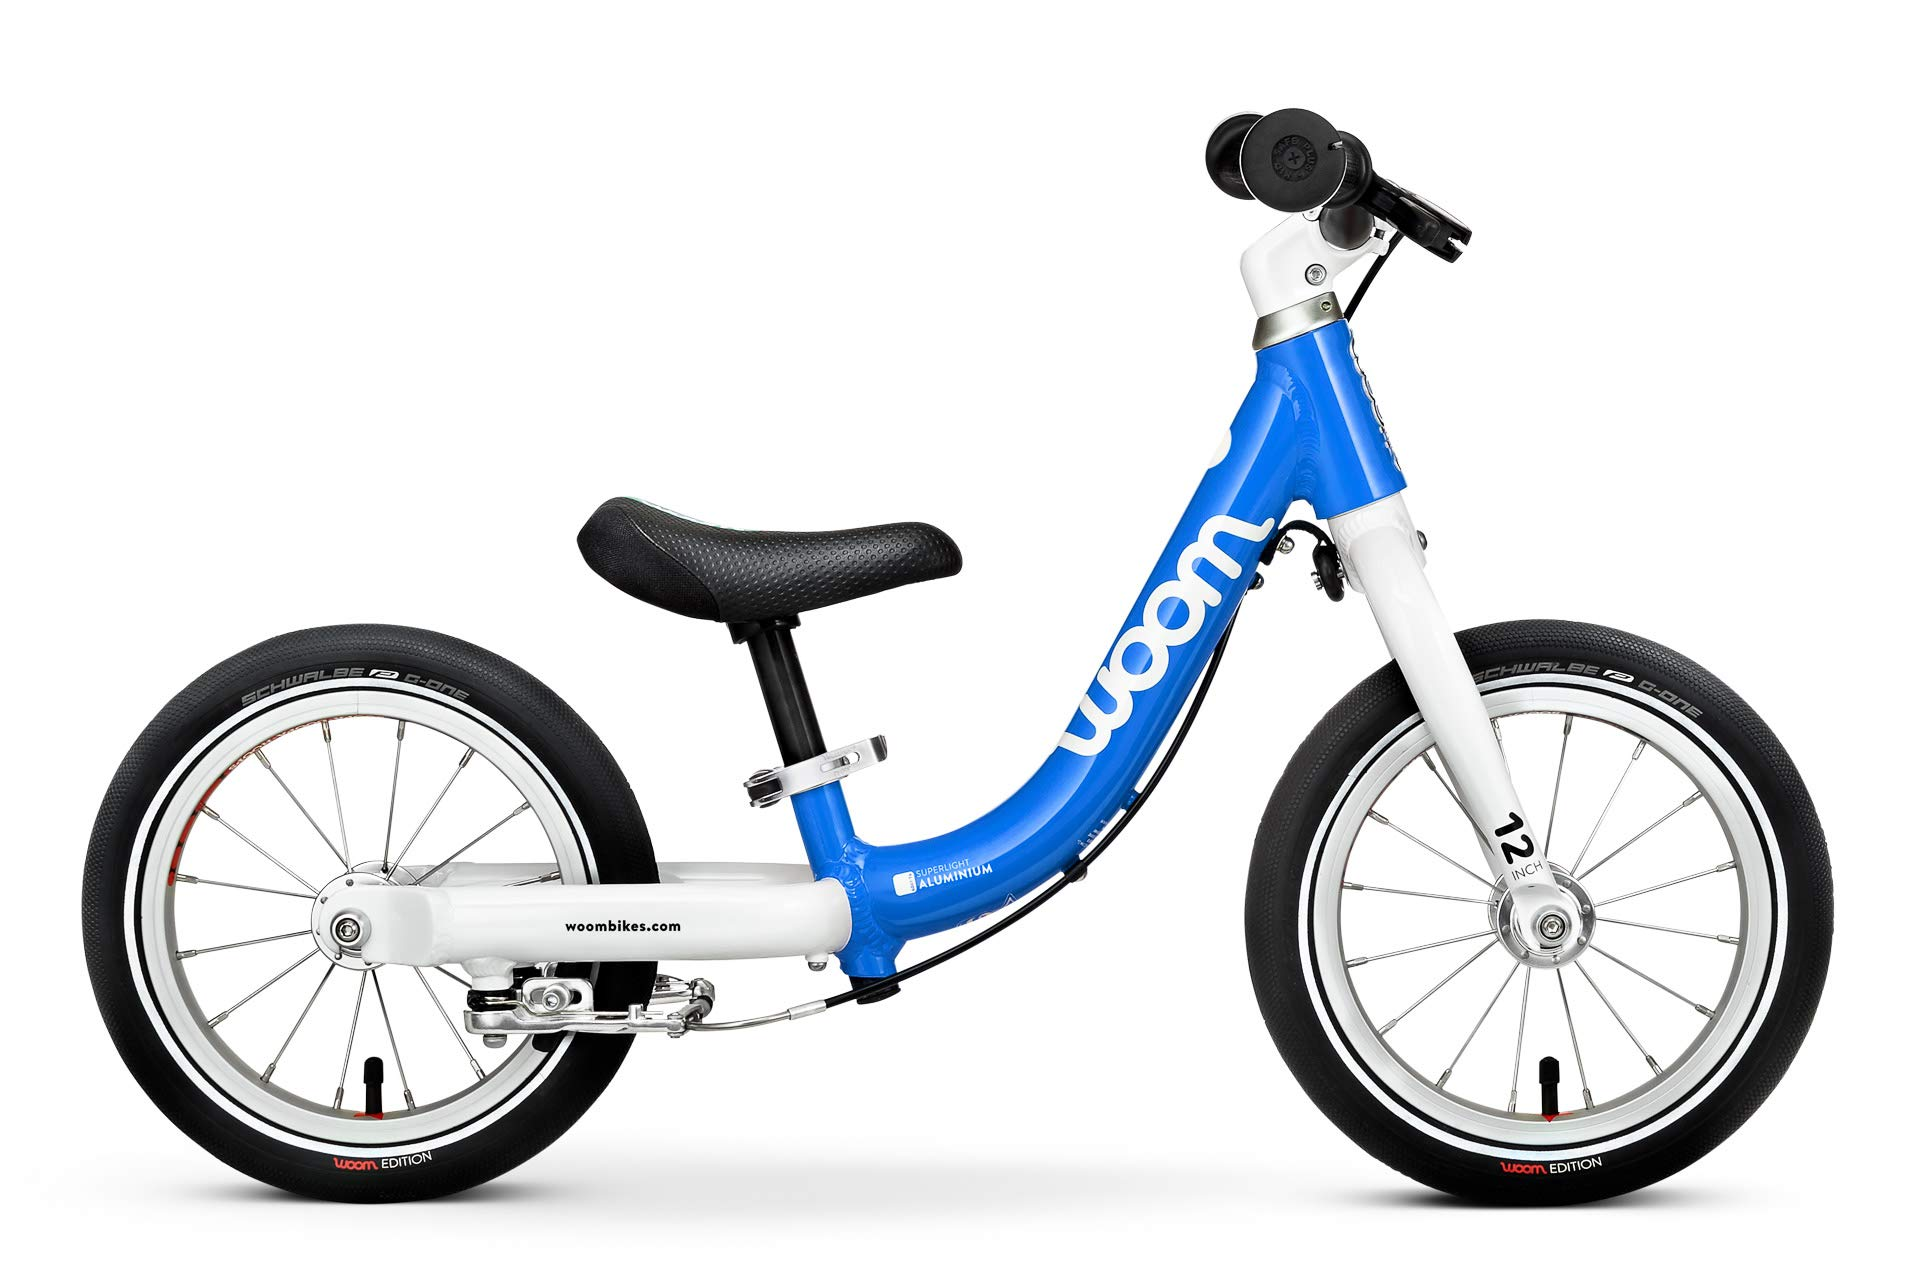 woom 1 Balance Bike 12'', Ages 18 Months to 3.5 Years, Blue